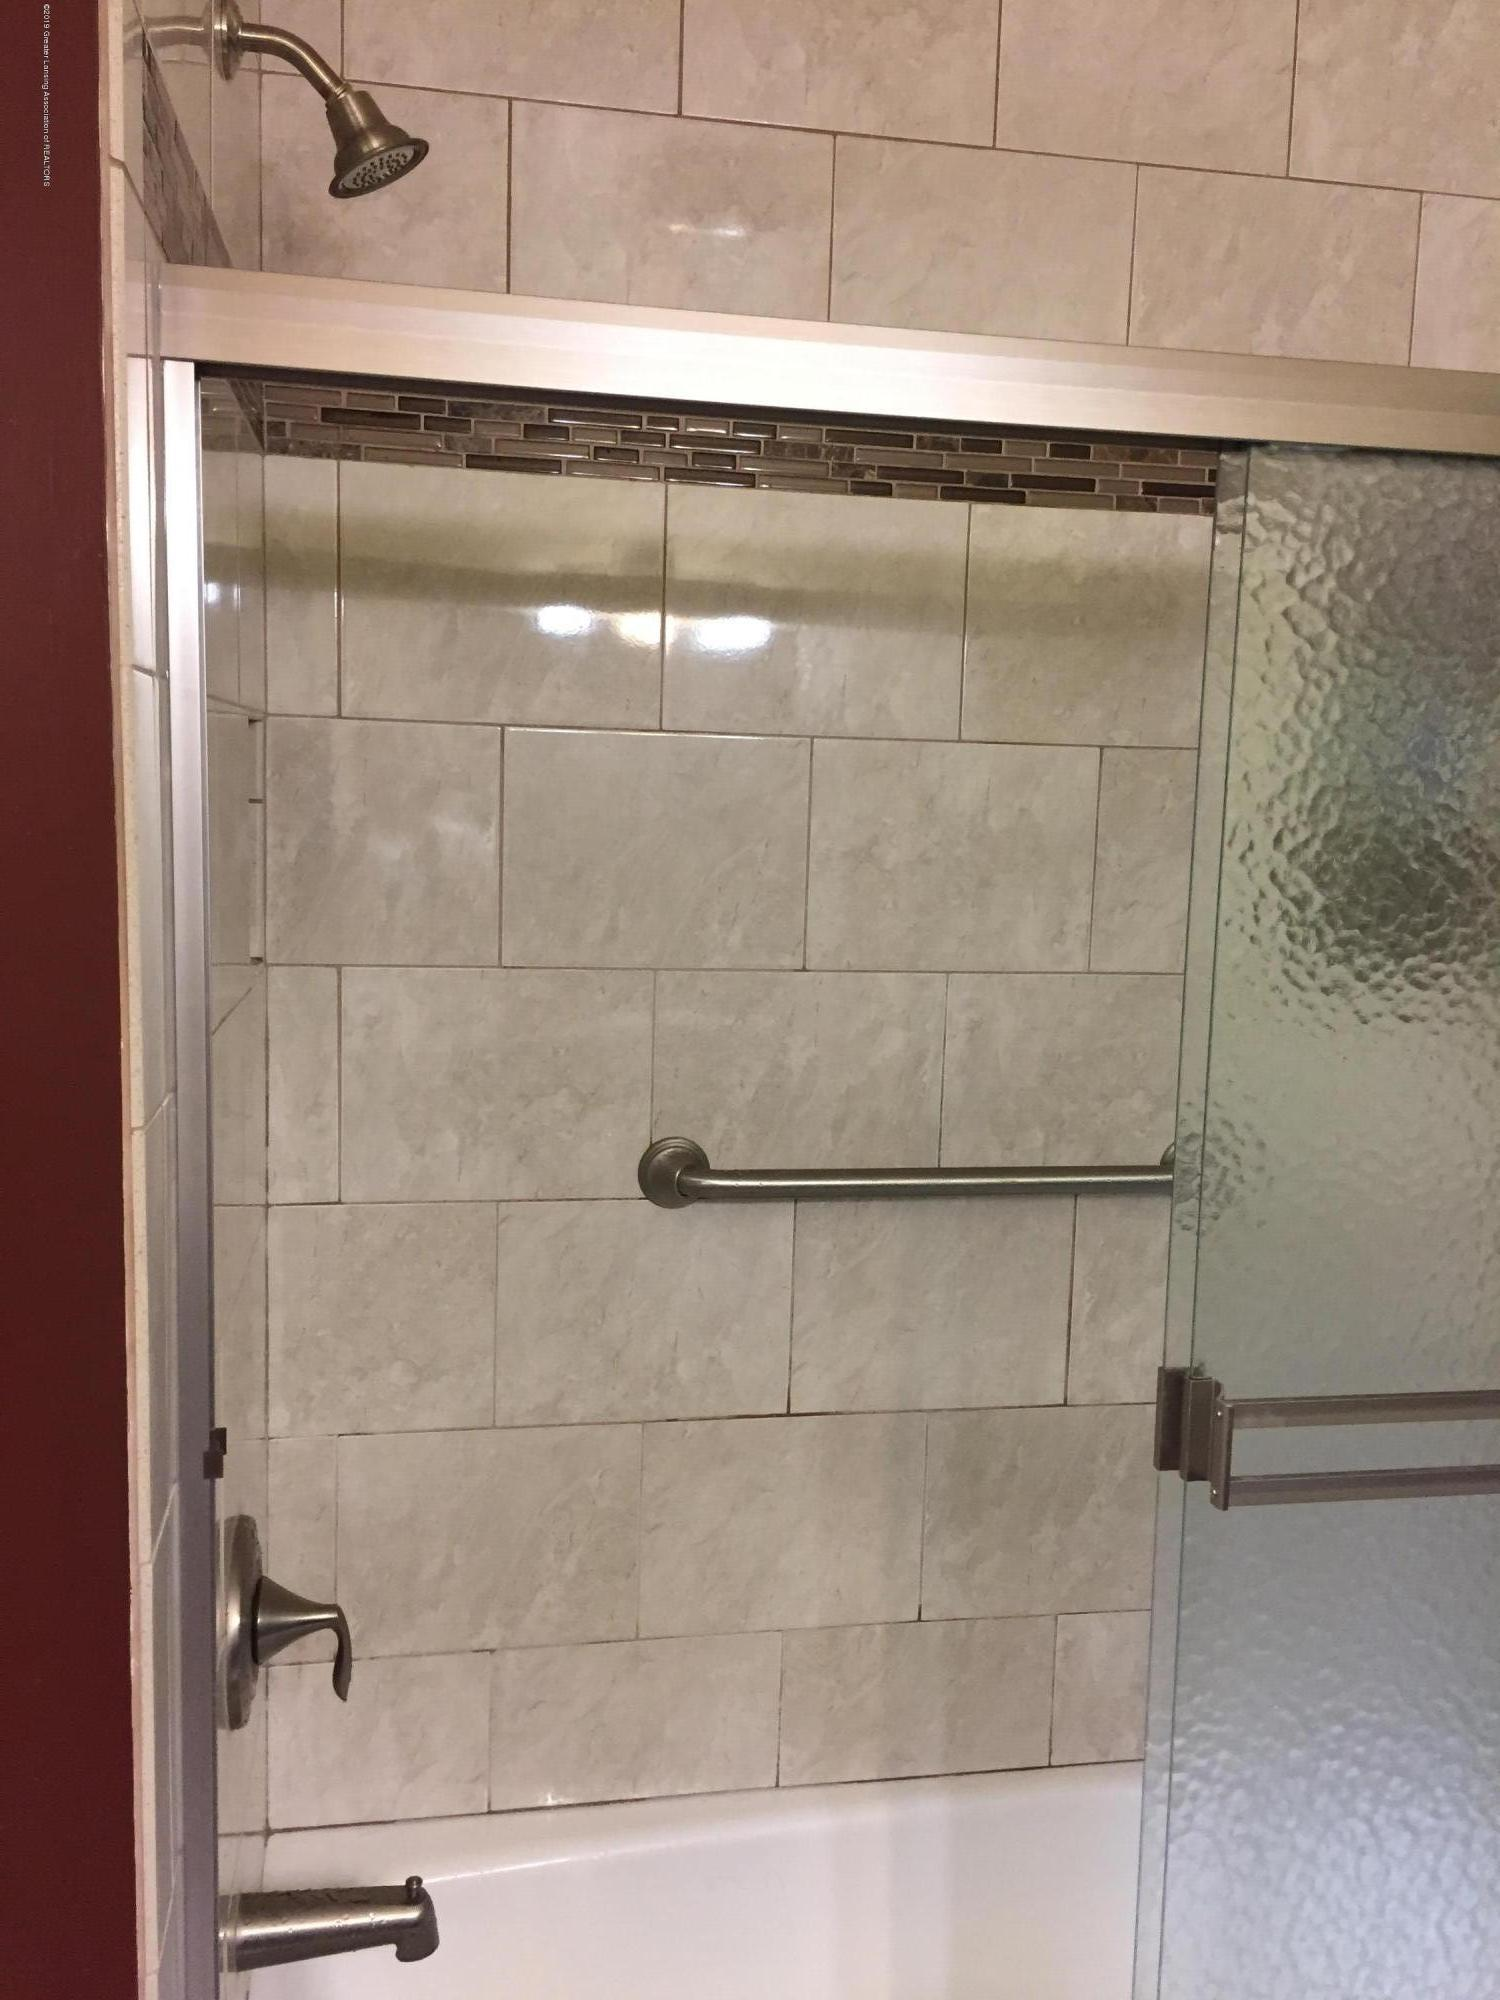 805 E Dill Dr - Beautiful Tiled Bath & Shower - 46